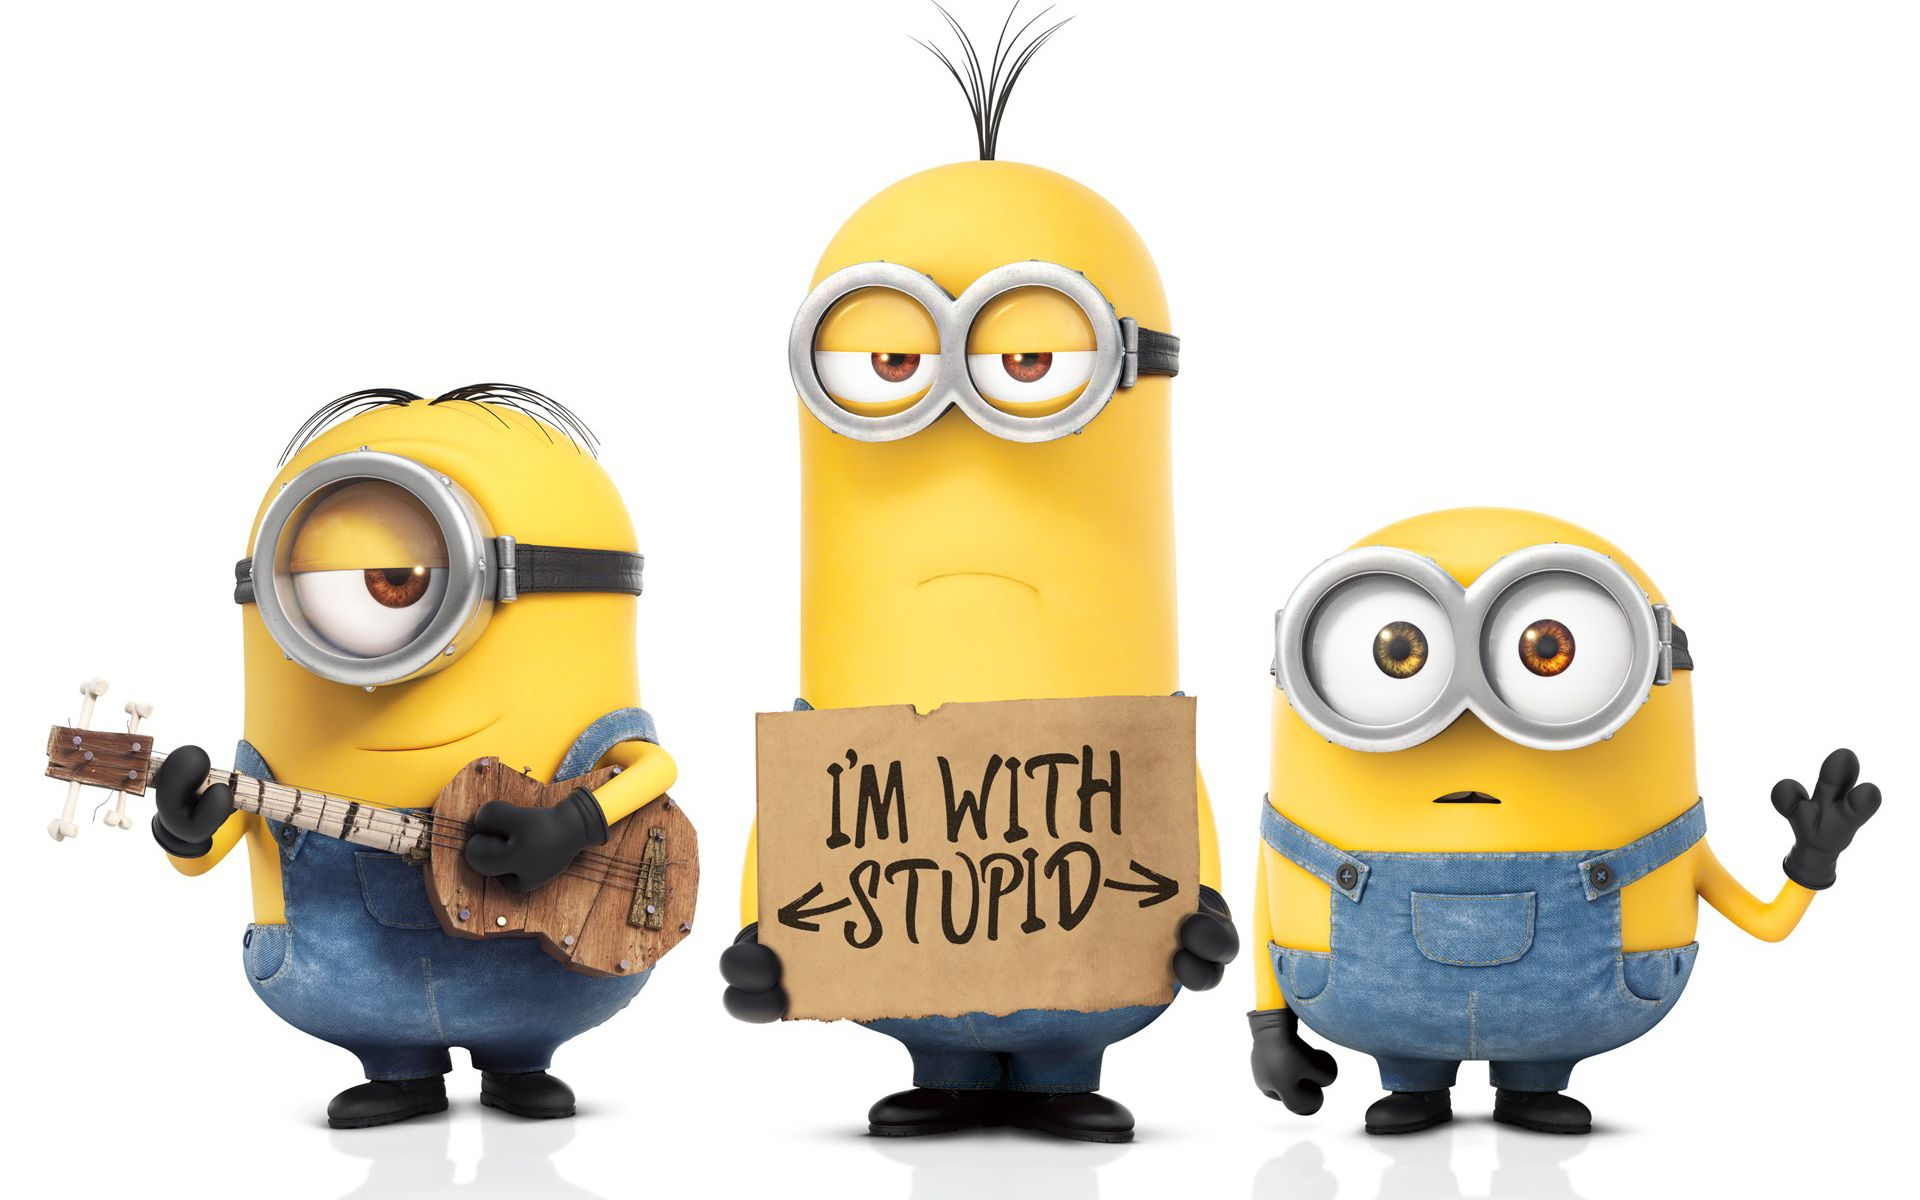 Minion Wallpapers   Top Minion Backgrounds   WallpaperAccess 1920x1200